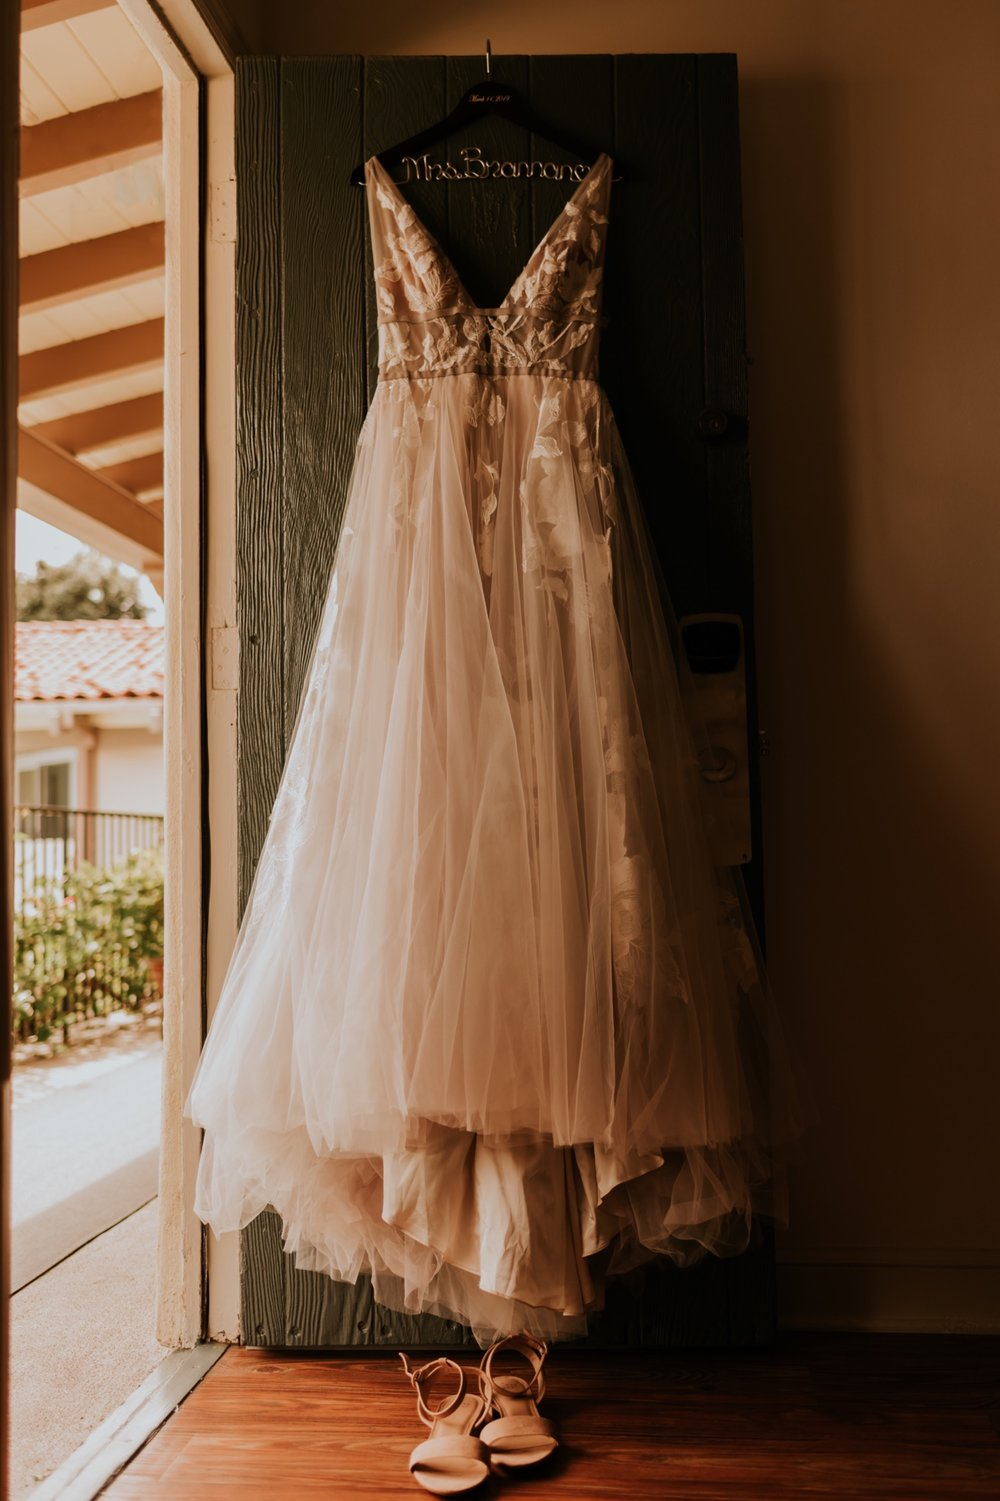 Santa Barbara Wedding at the Carousel House   Wedding Getting Ready Details    Carrie Rogers Photography